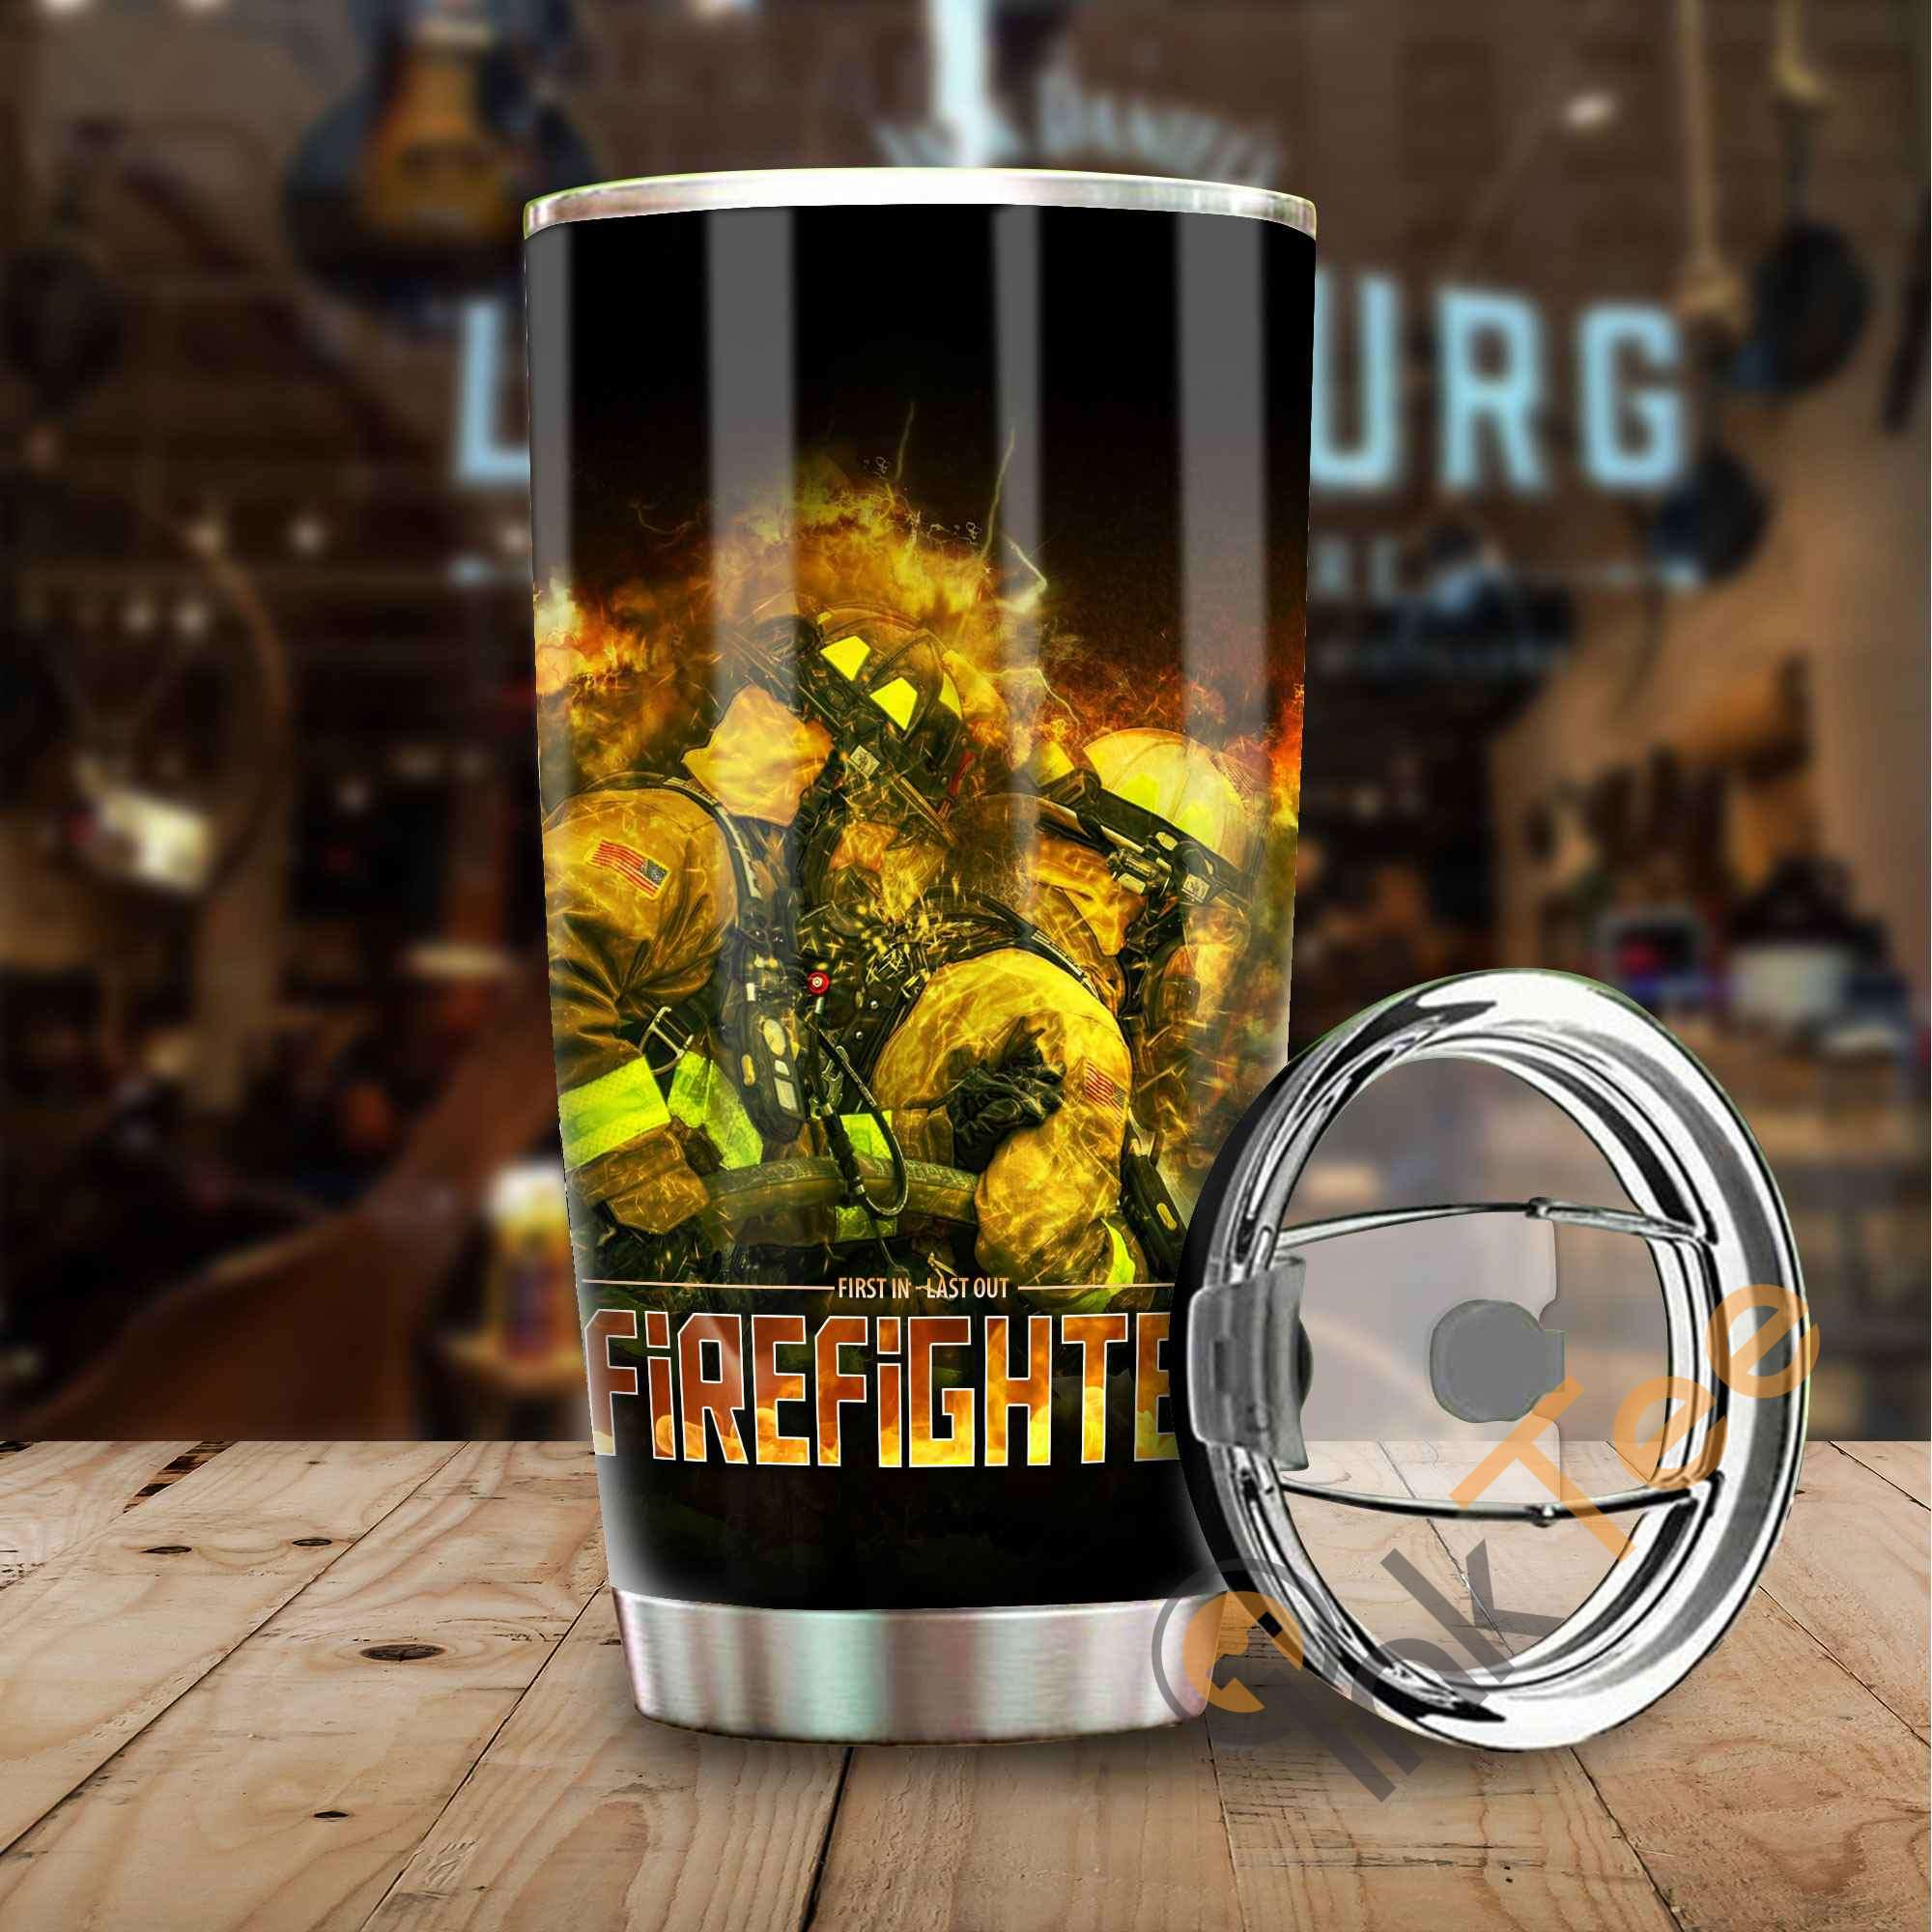 Firefighter First In Last Out Amazon Best Seller Sku 2872 Stainless Steel Tumbler